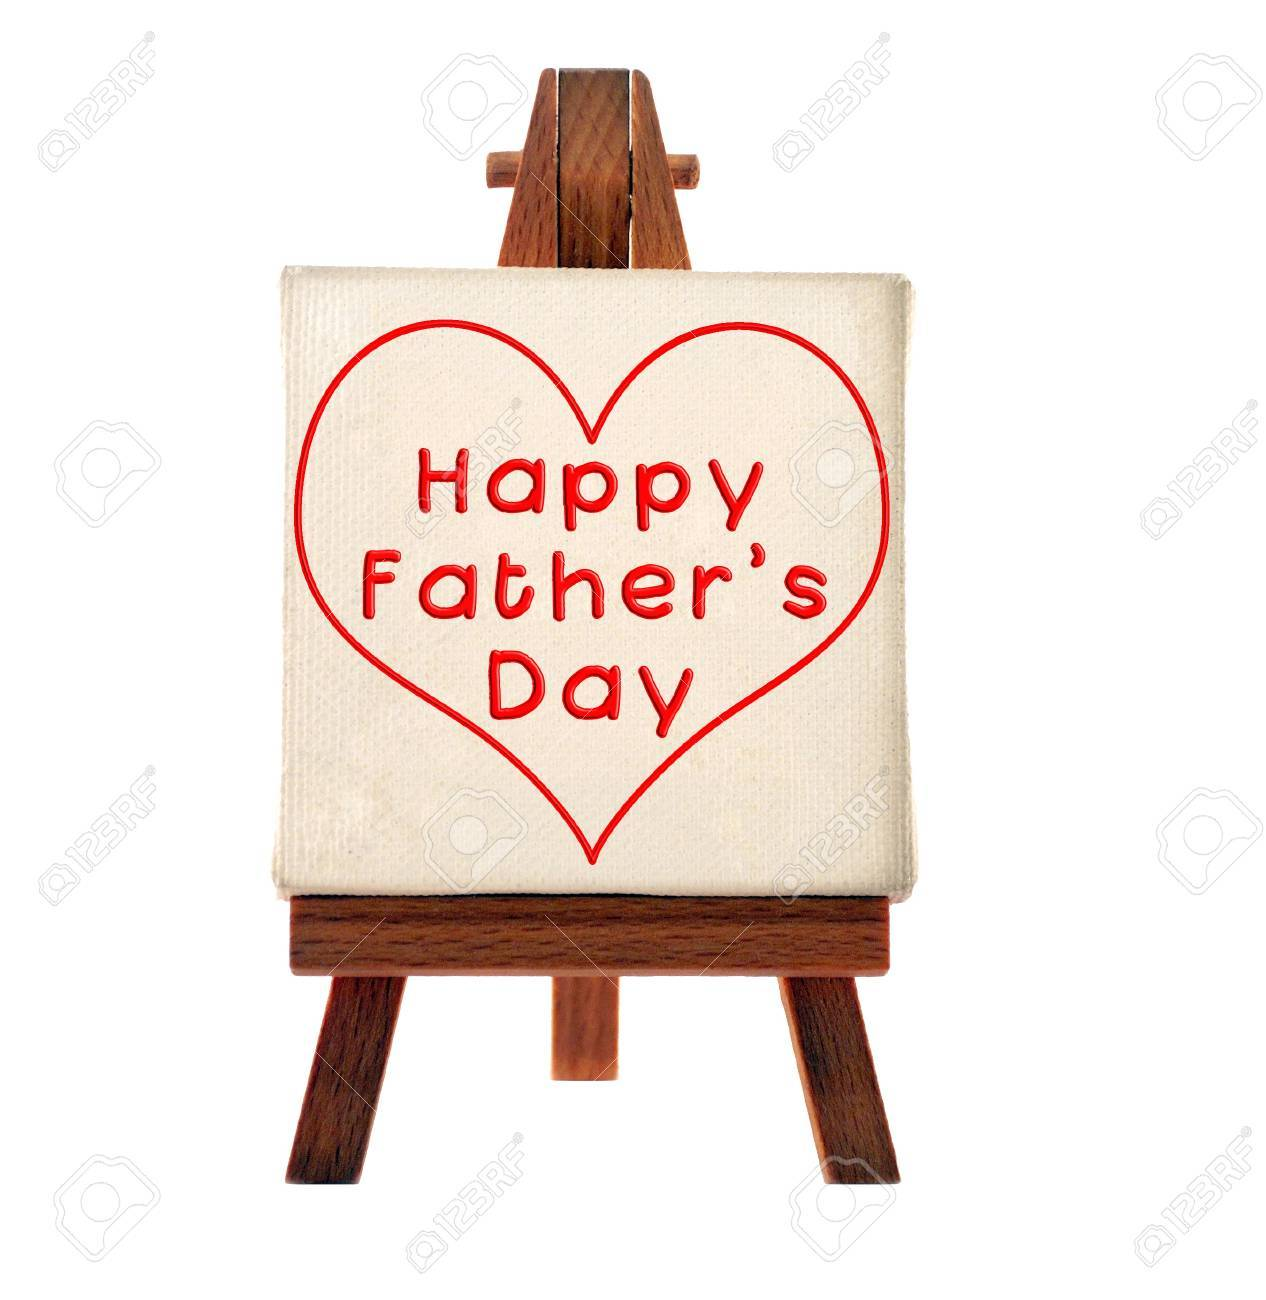 happy father's day message Stock Photo - 9316641